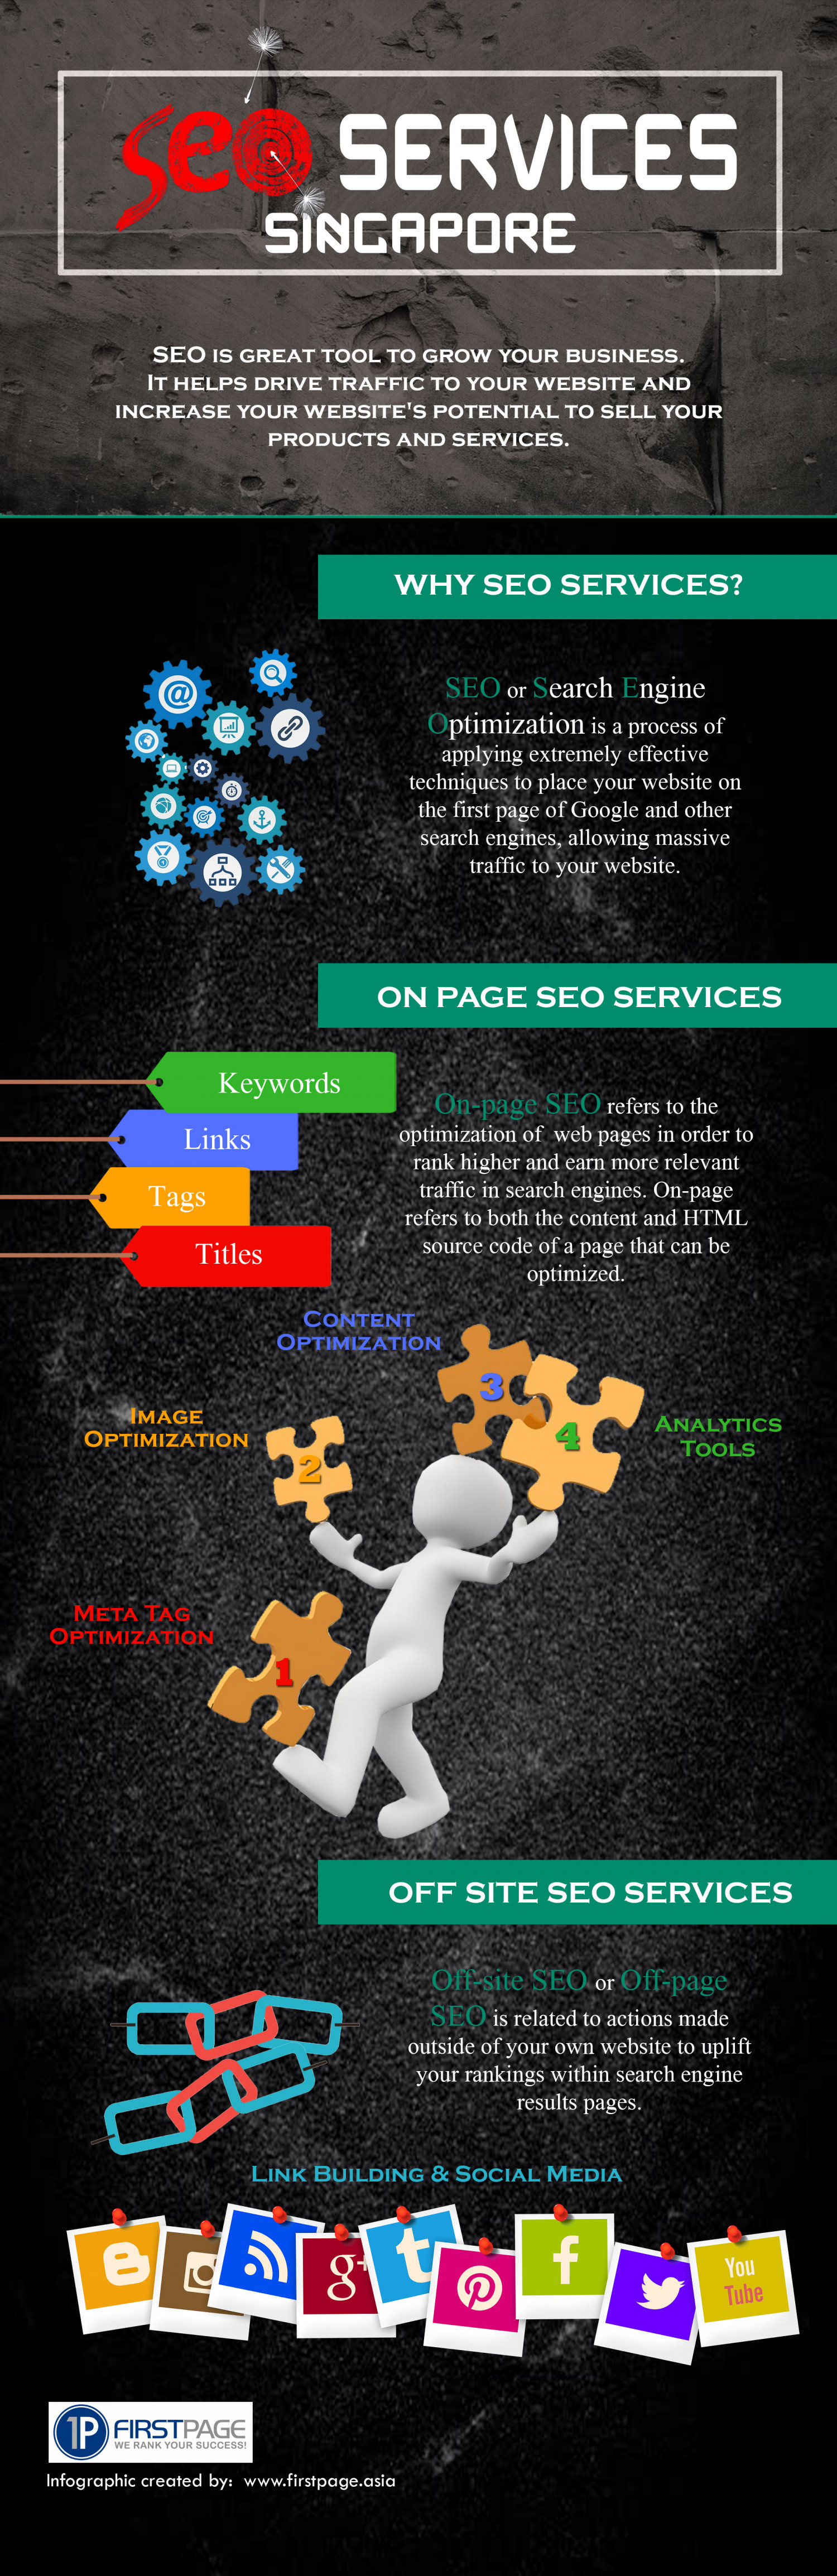 SEO SERVICES SINGAPORE Infographic